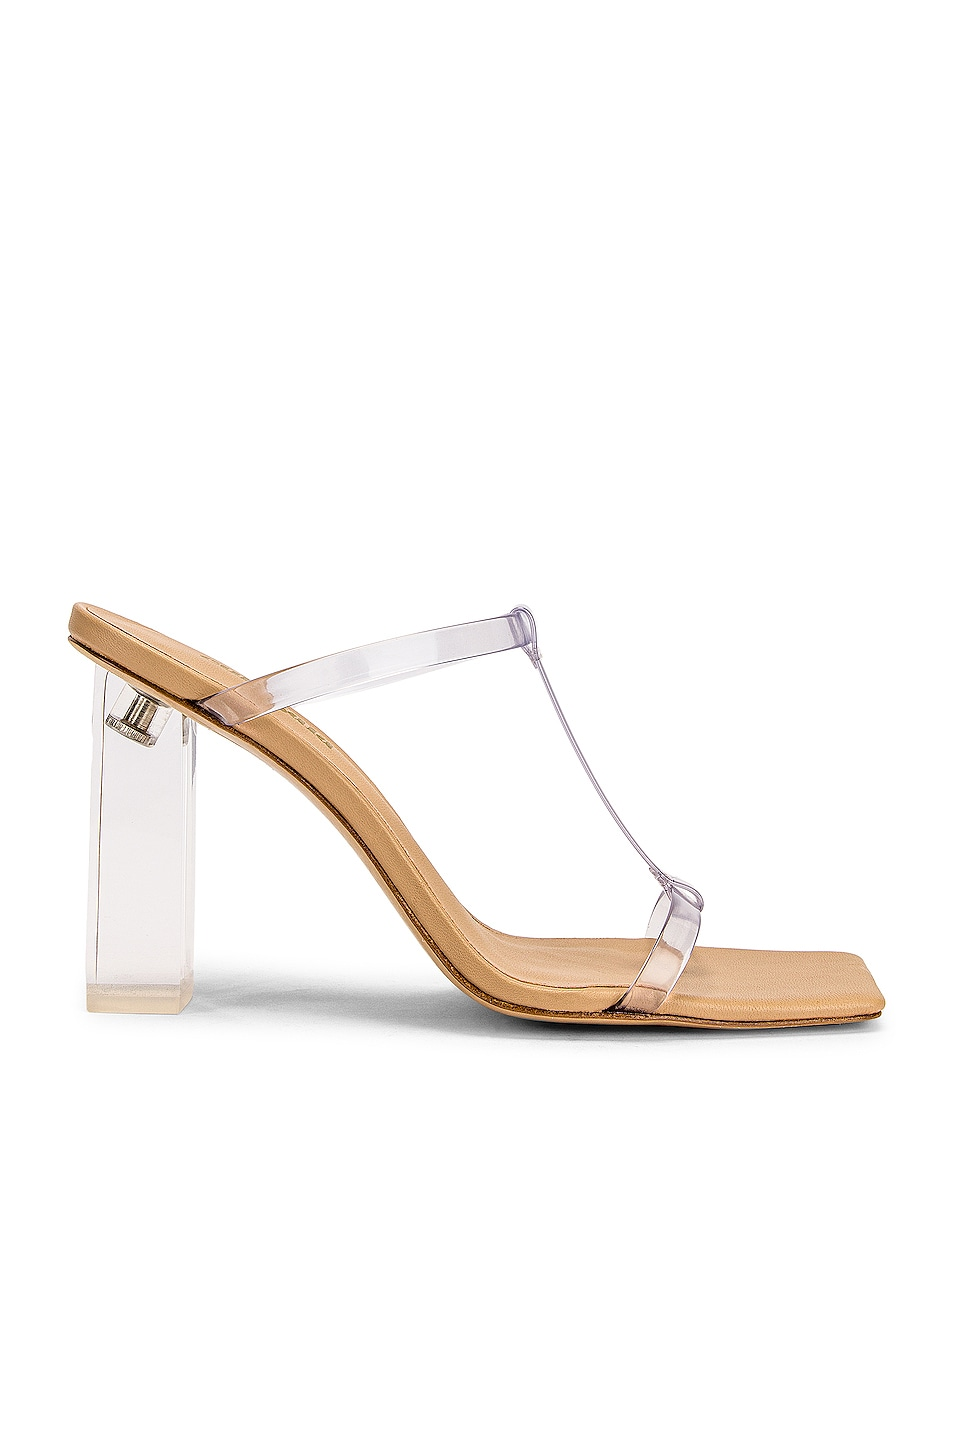 Image 1 of Cult Gaia Piper Heel in Clear